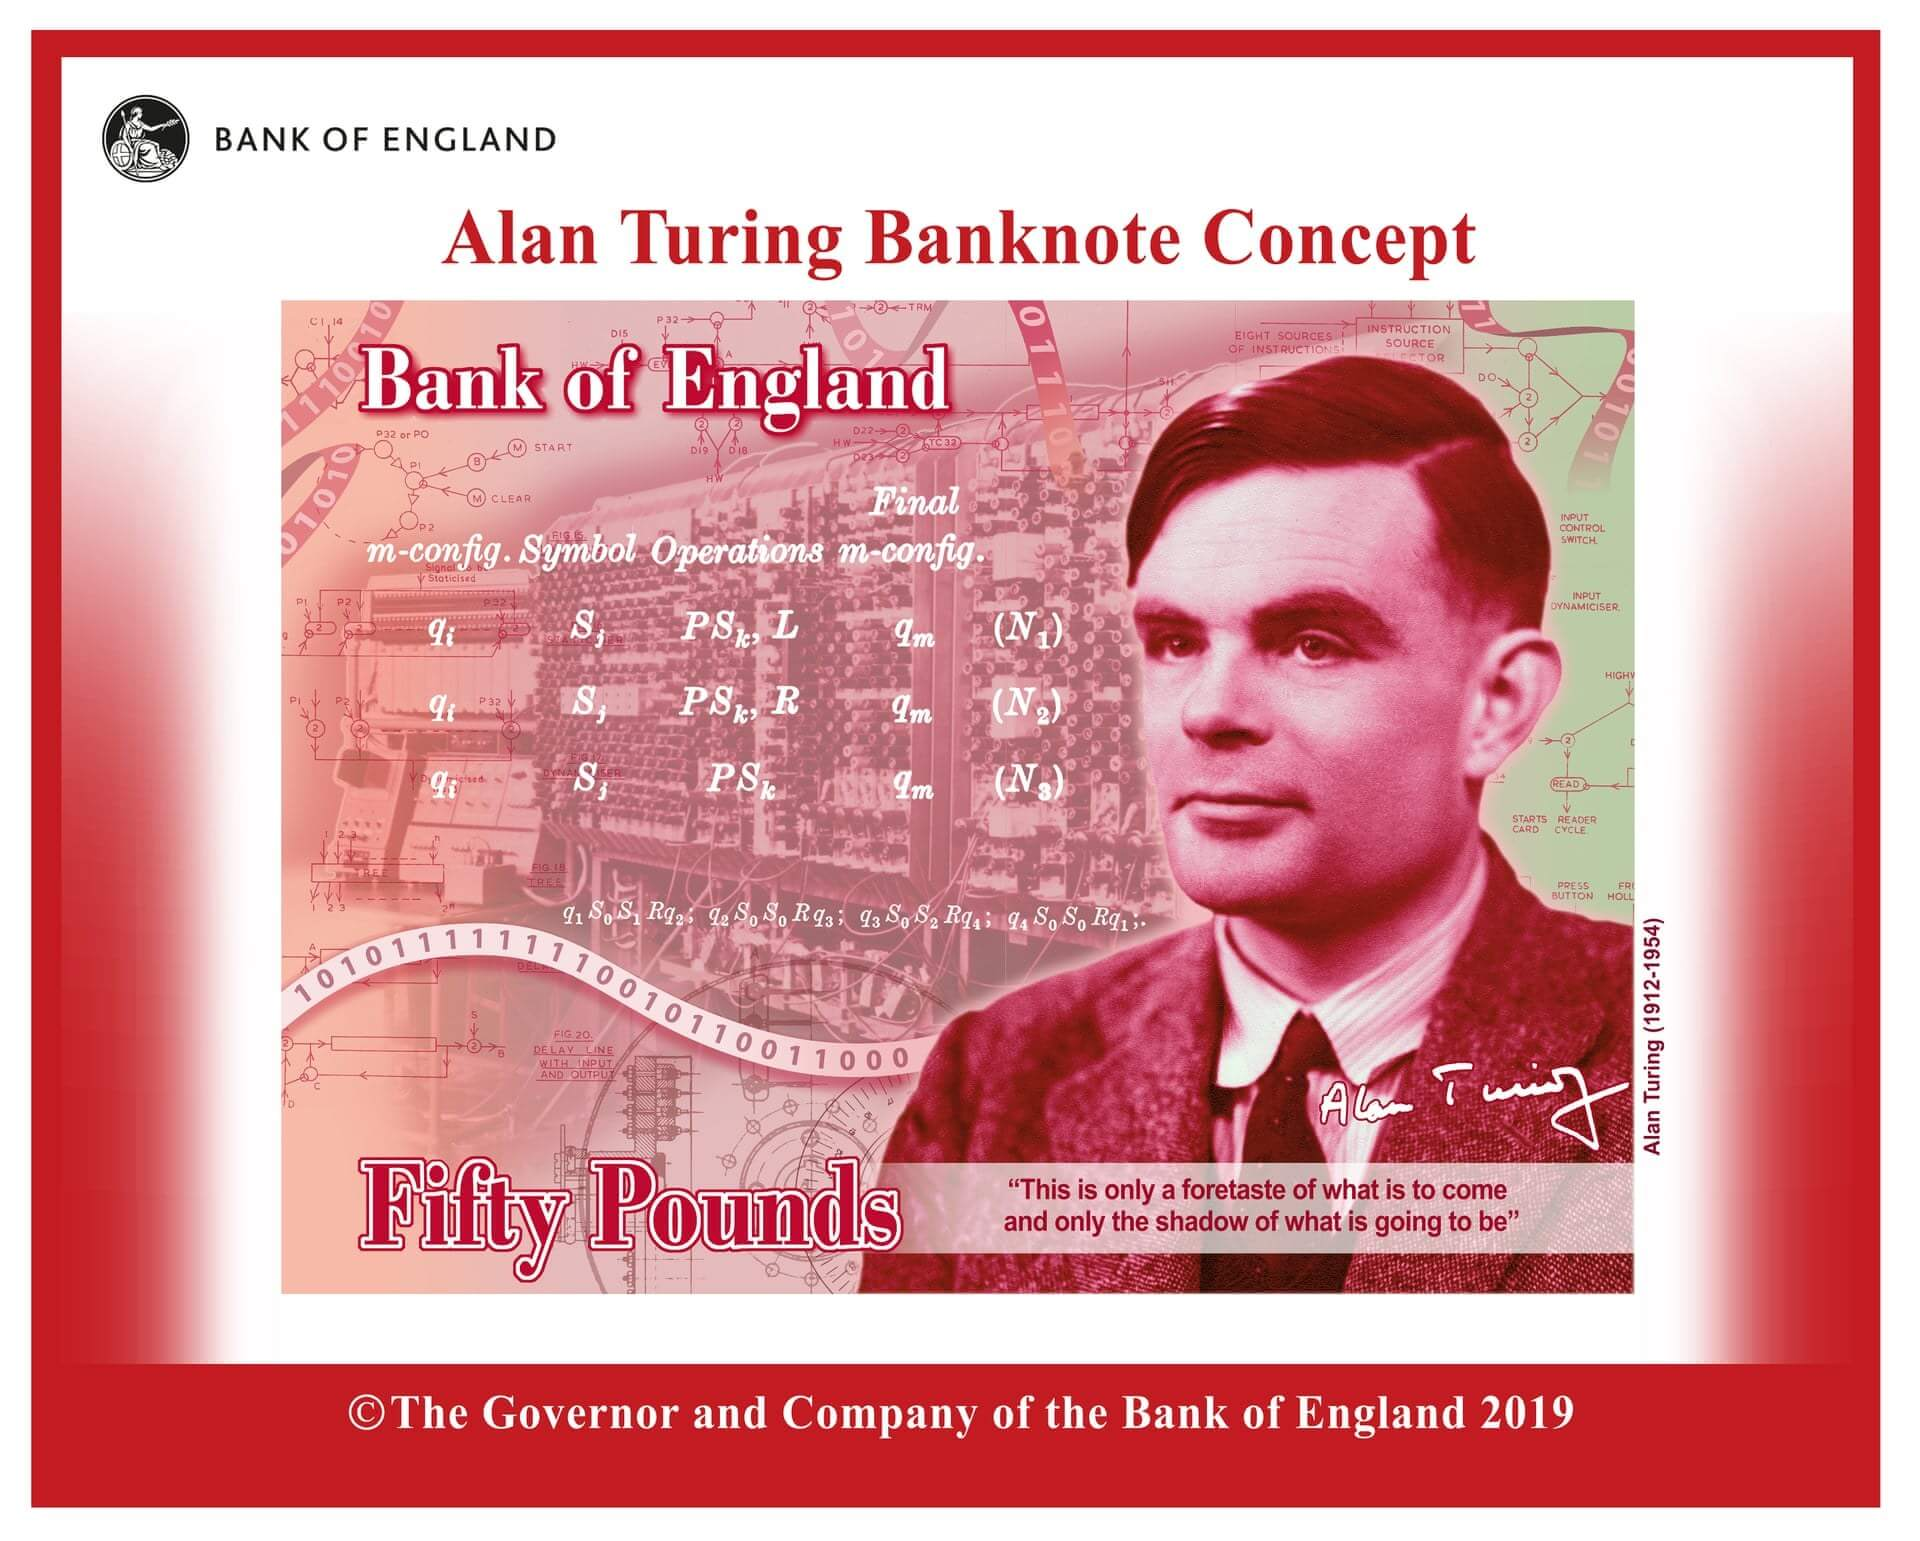 Bank of England Accrediting Cryptocurrency? New £50 Note to Feature Alan Turing